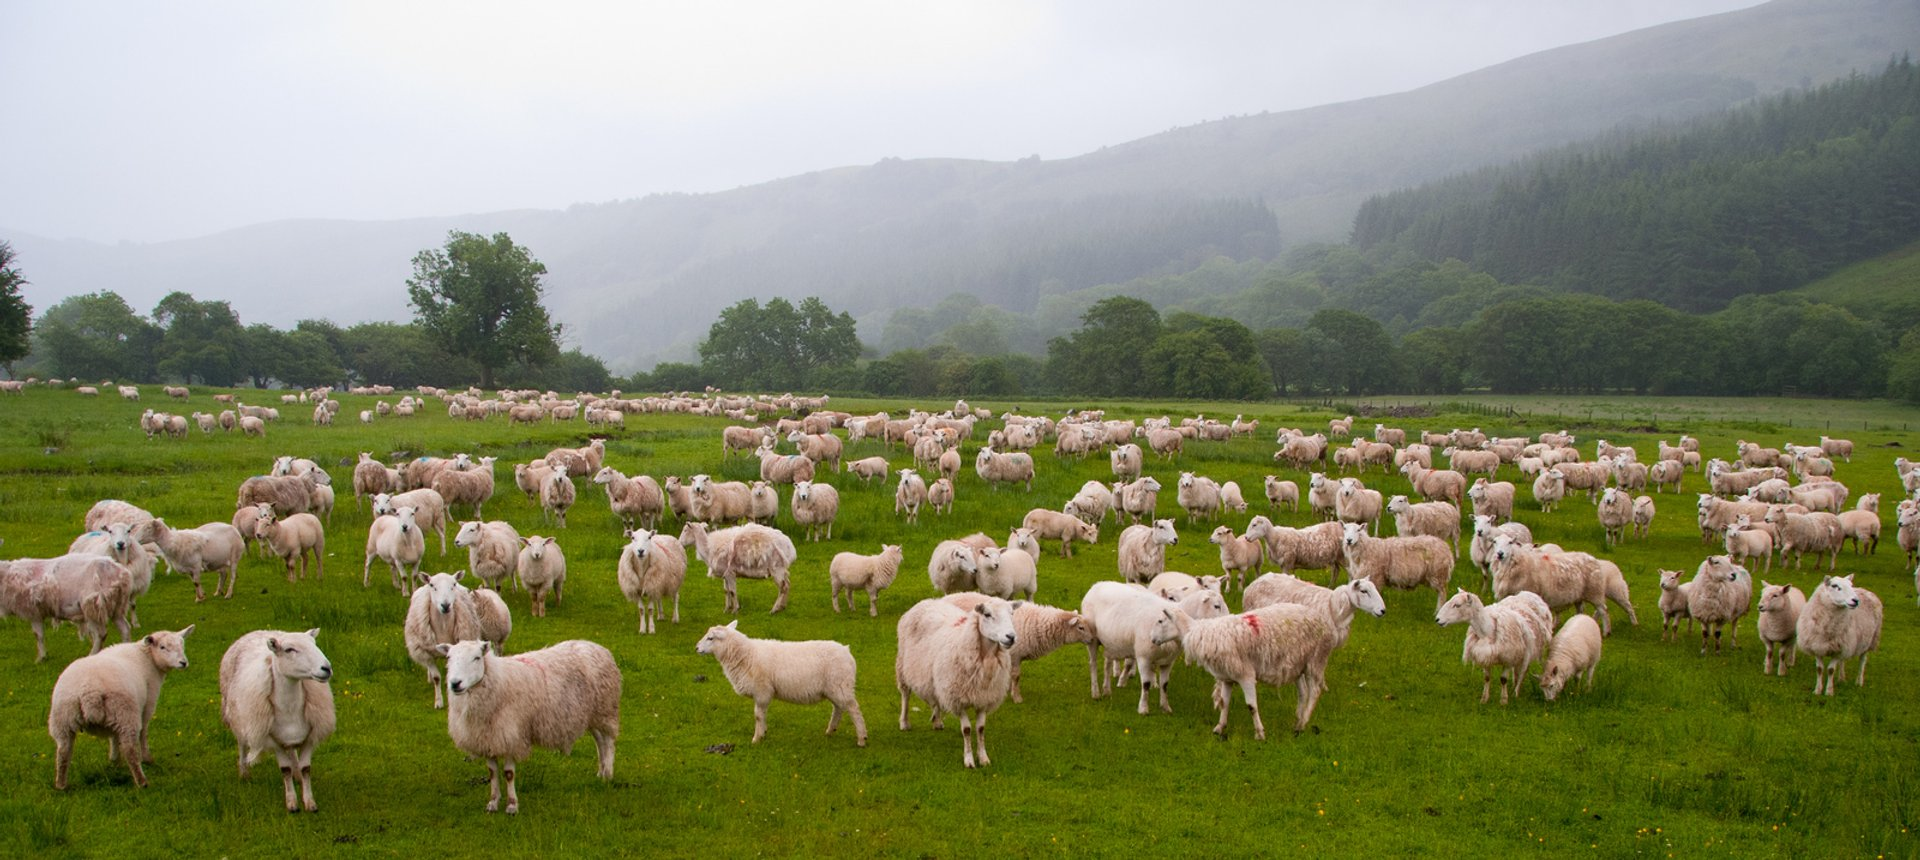 Sheep Trekking in the Brecon Beacons in Wales 2020 - Best Time